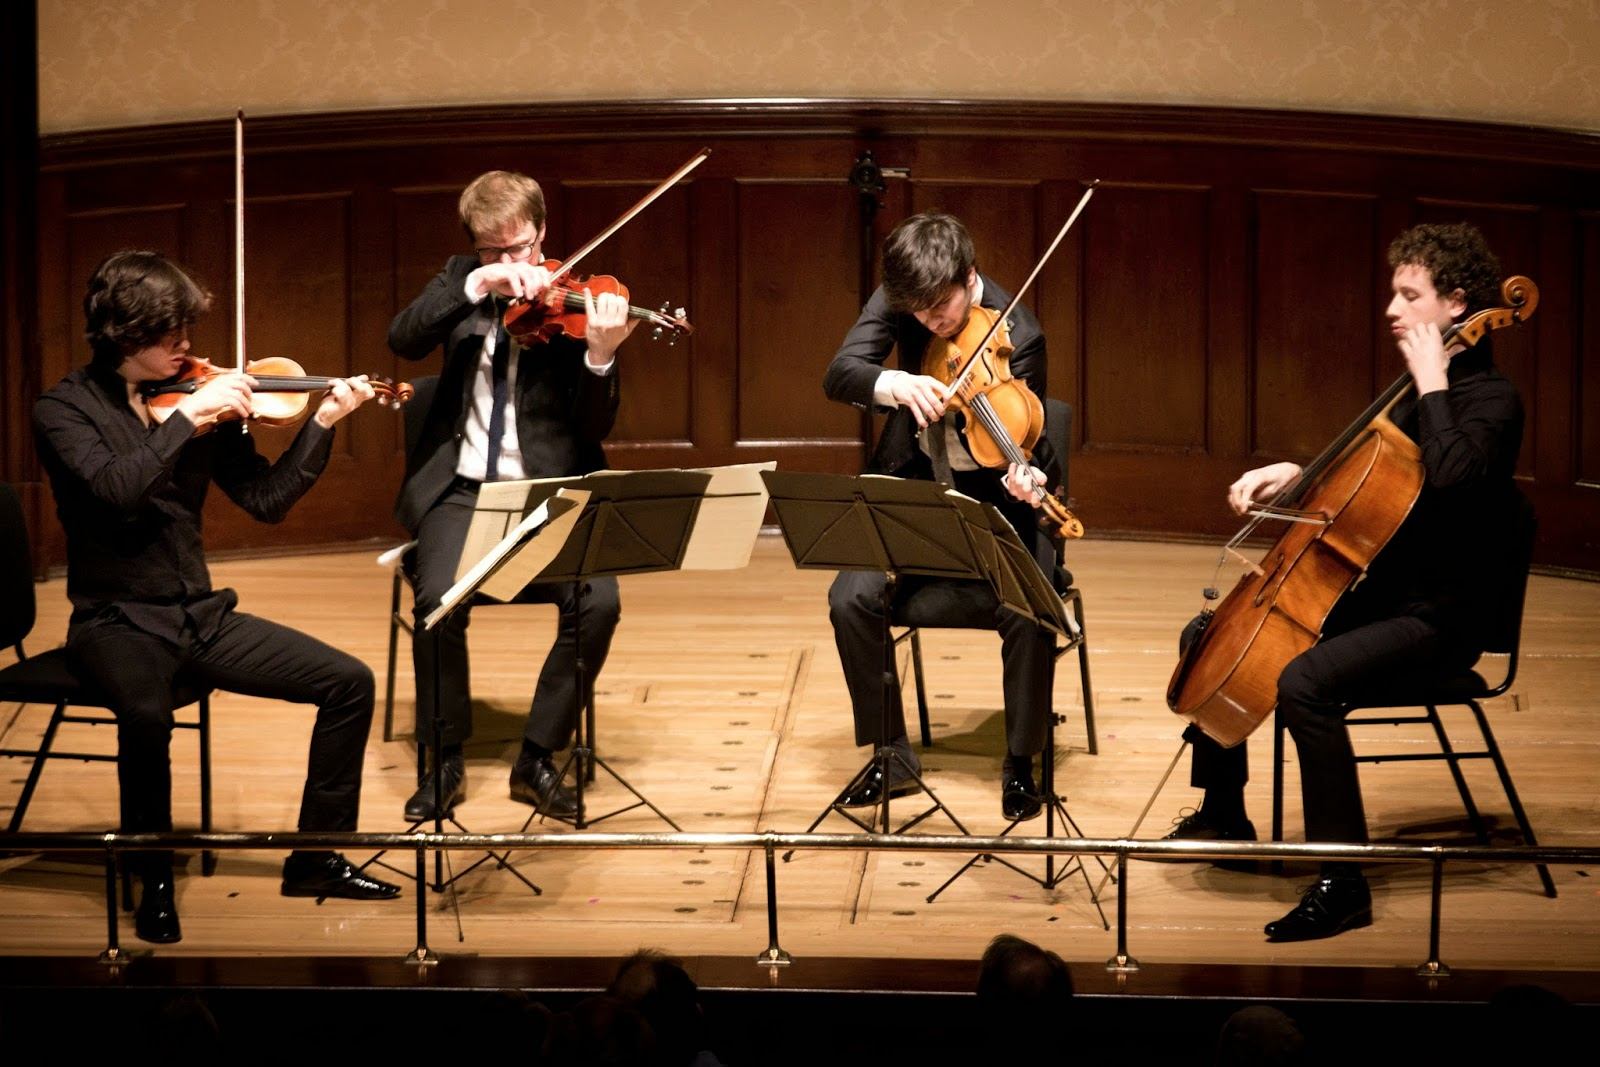 Van Kuijk Quartet (winners of the Wigmore Hall String Quartet Competition) performing in the final - photo Ben Ealovega